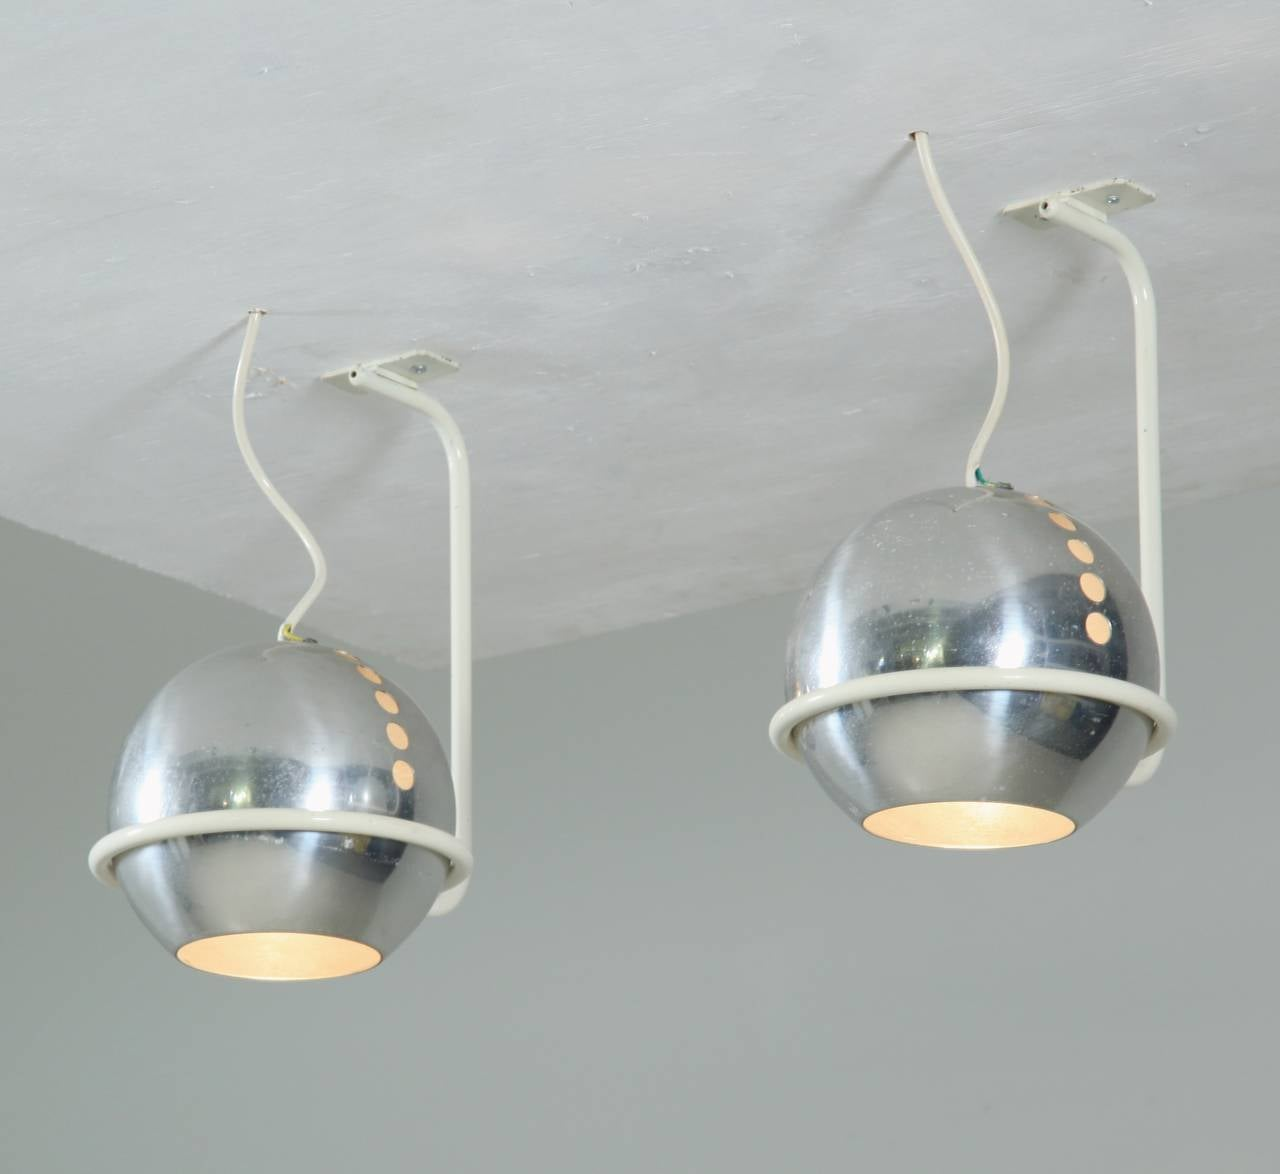 arteluce lighting italy. pair of model 232g ceiling lamps by gino sarfatti, arteluce, italy, 1960s 2 arteluce lighting italy